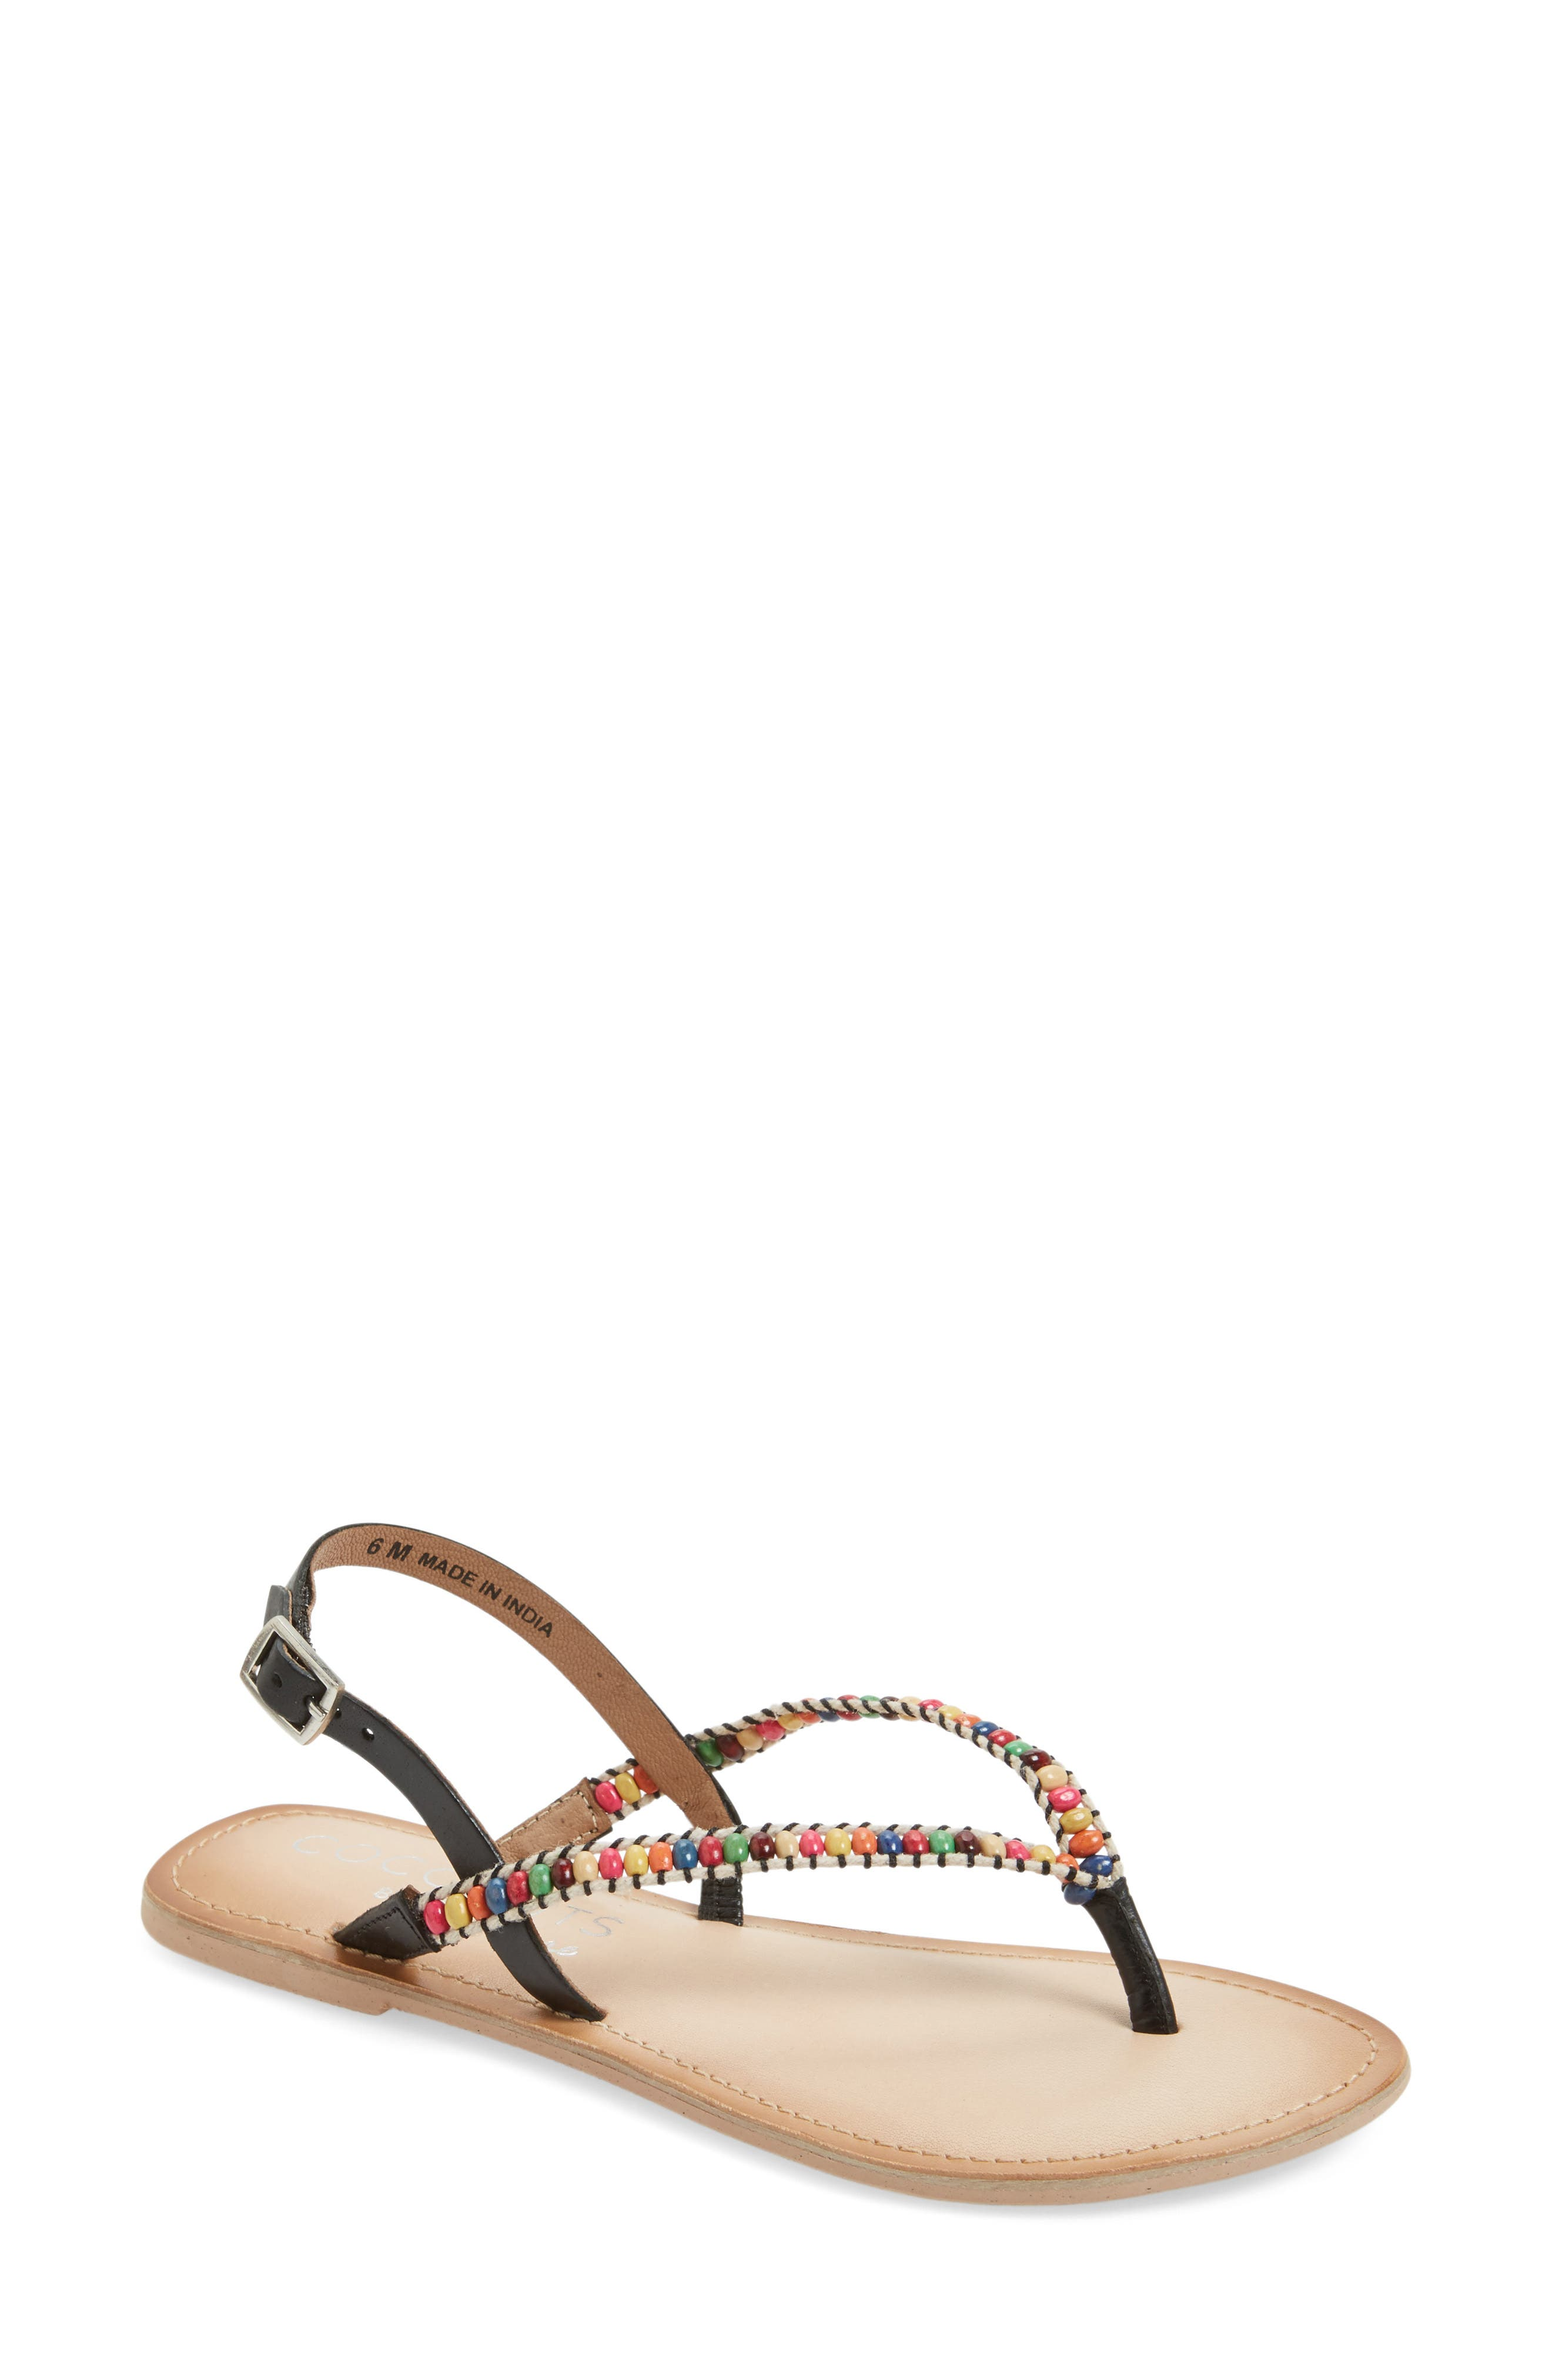 Coconuts by Matisse Celebration Beaded Sandal,                             Main thumbnail 1, color,